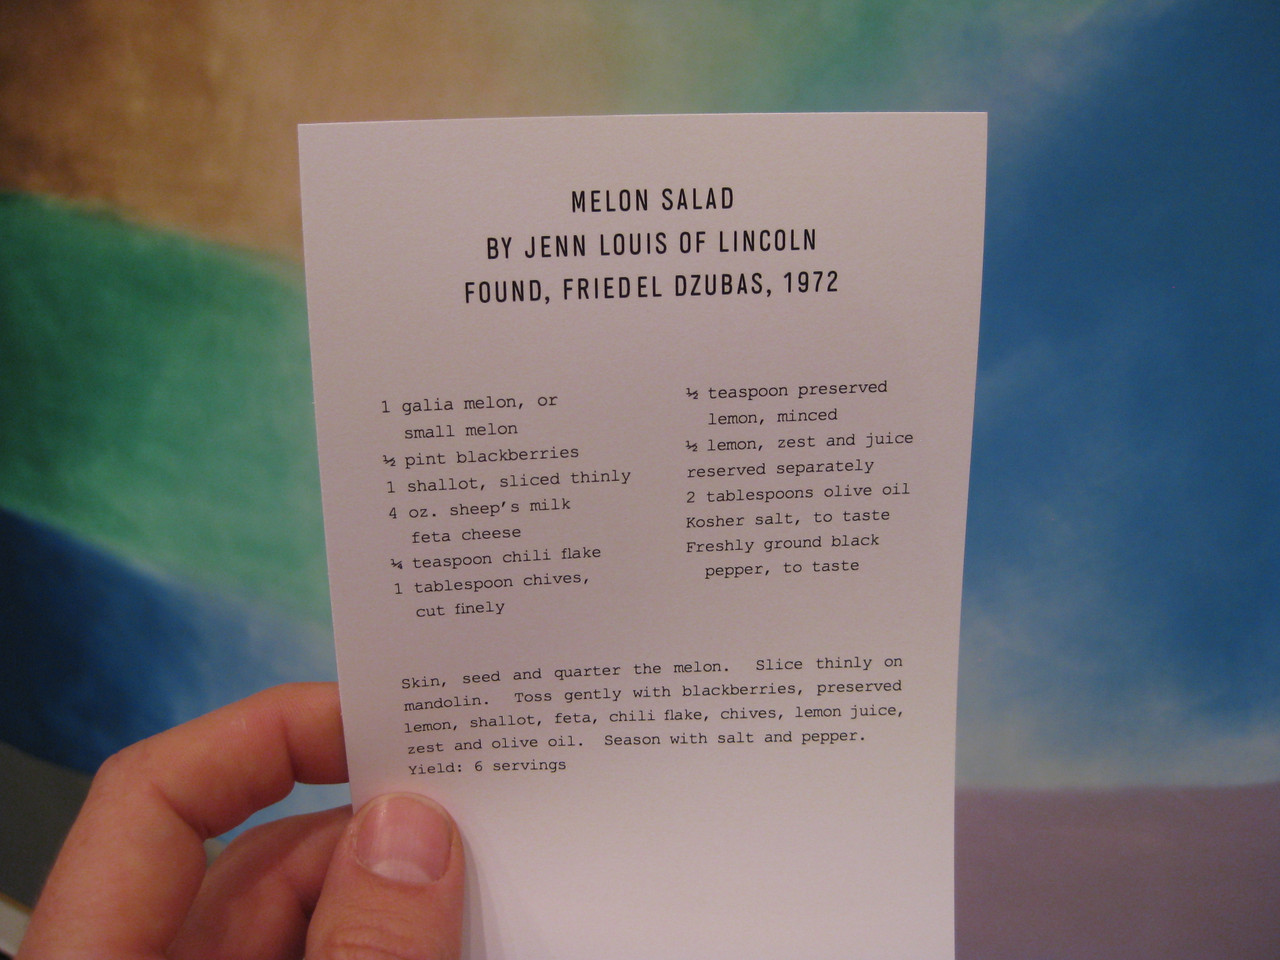 Museum Cookbook, 2012. I collaborated with artist Crystal Baxley to employ 11 local chefs to make recipes based on artworks at the Portland Art Museum. The chefs visited, found artworks, interpreted them into recipes. We situated the recipes next to the corresponding works of art. Visitors could collect them all, requiring them to look deeply throughout the museum, and connect with the artworks on a longer term basis, through the recipes.